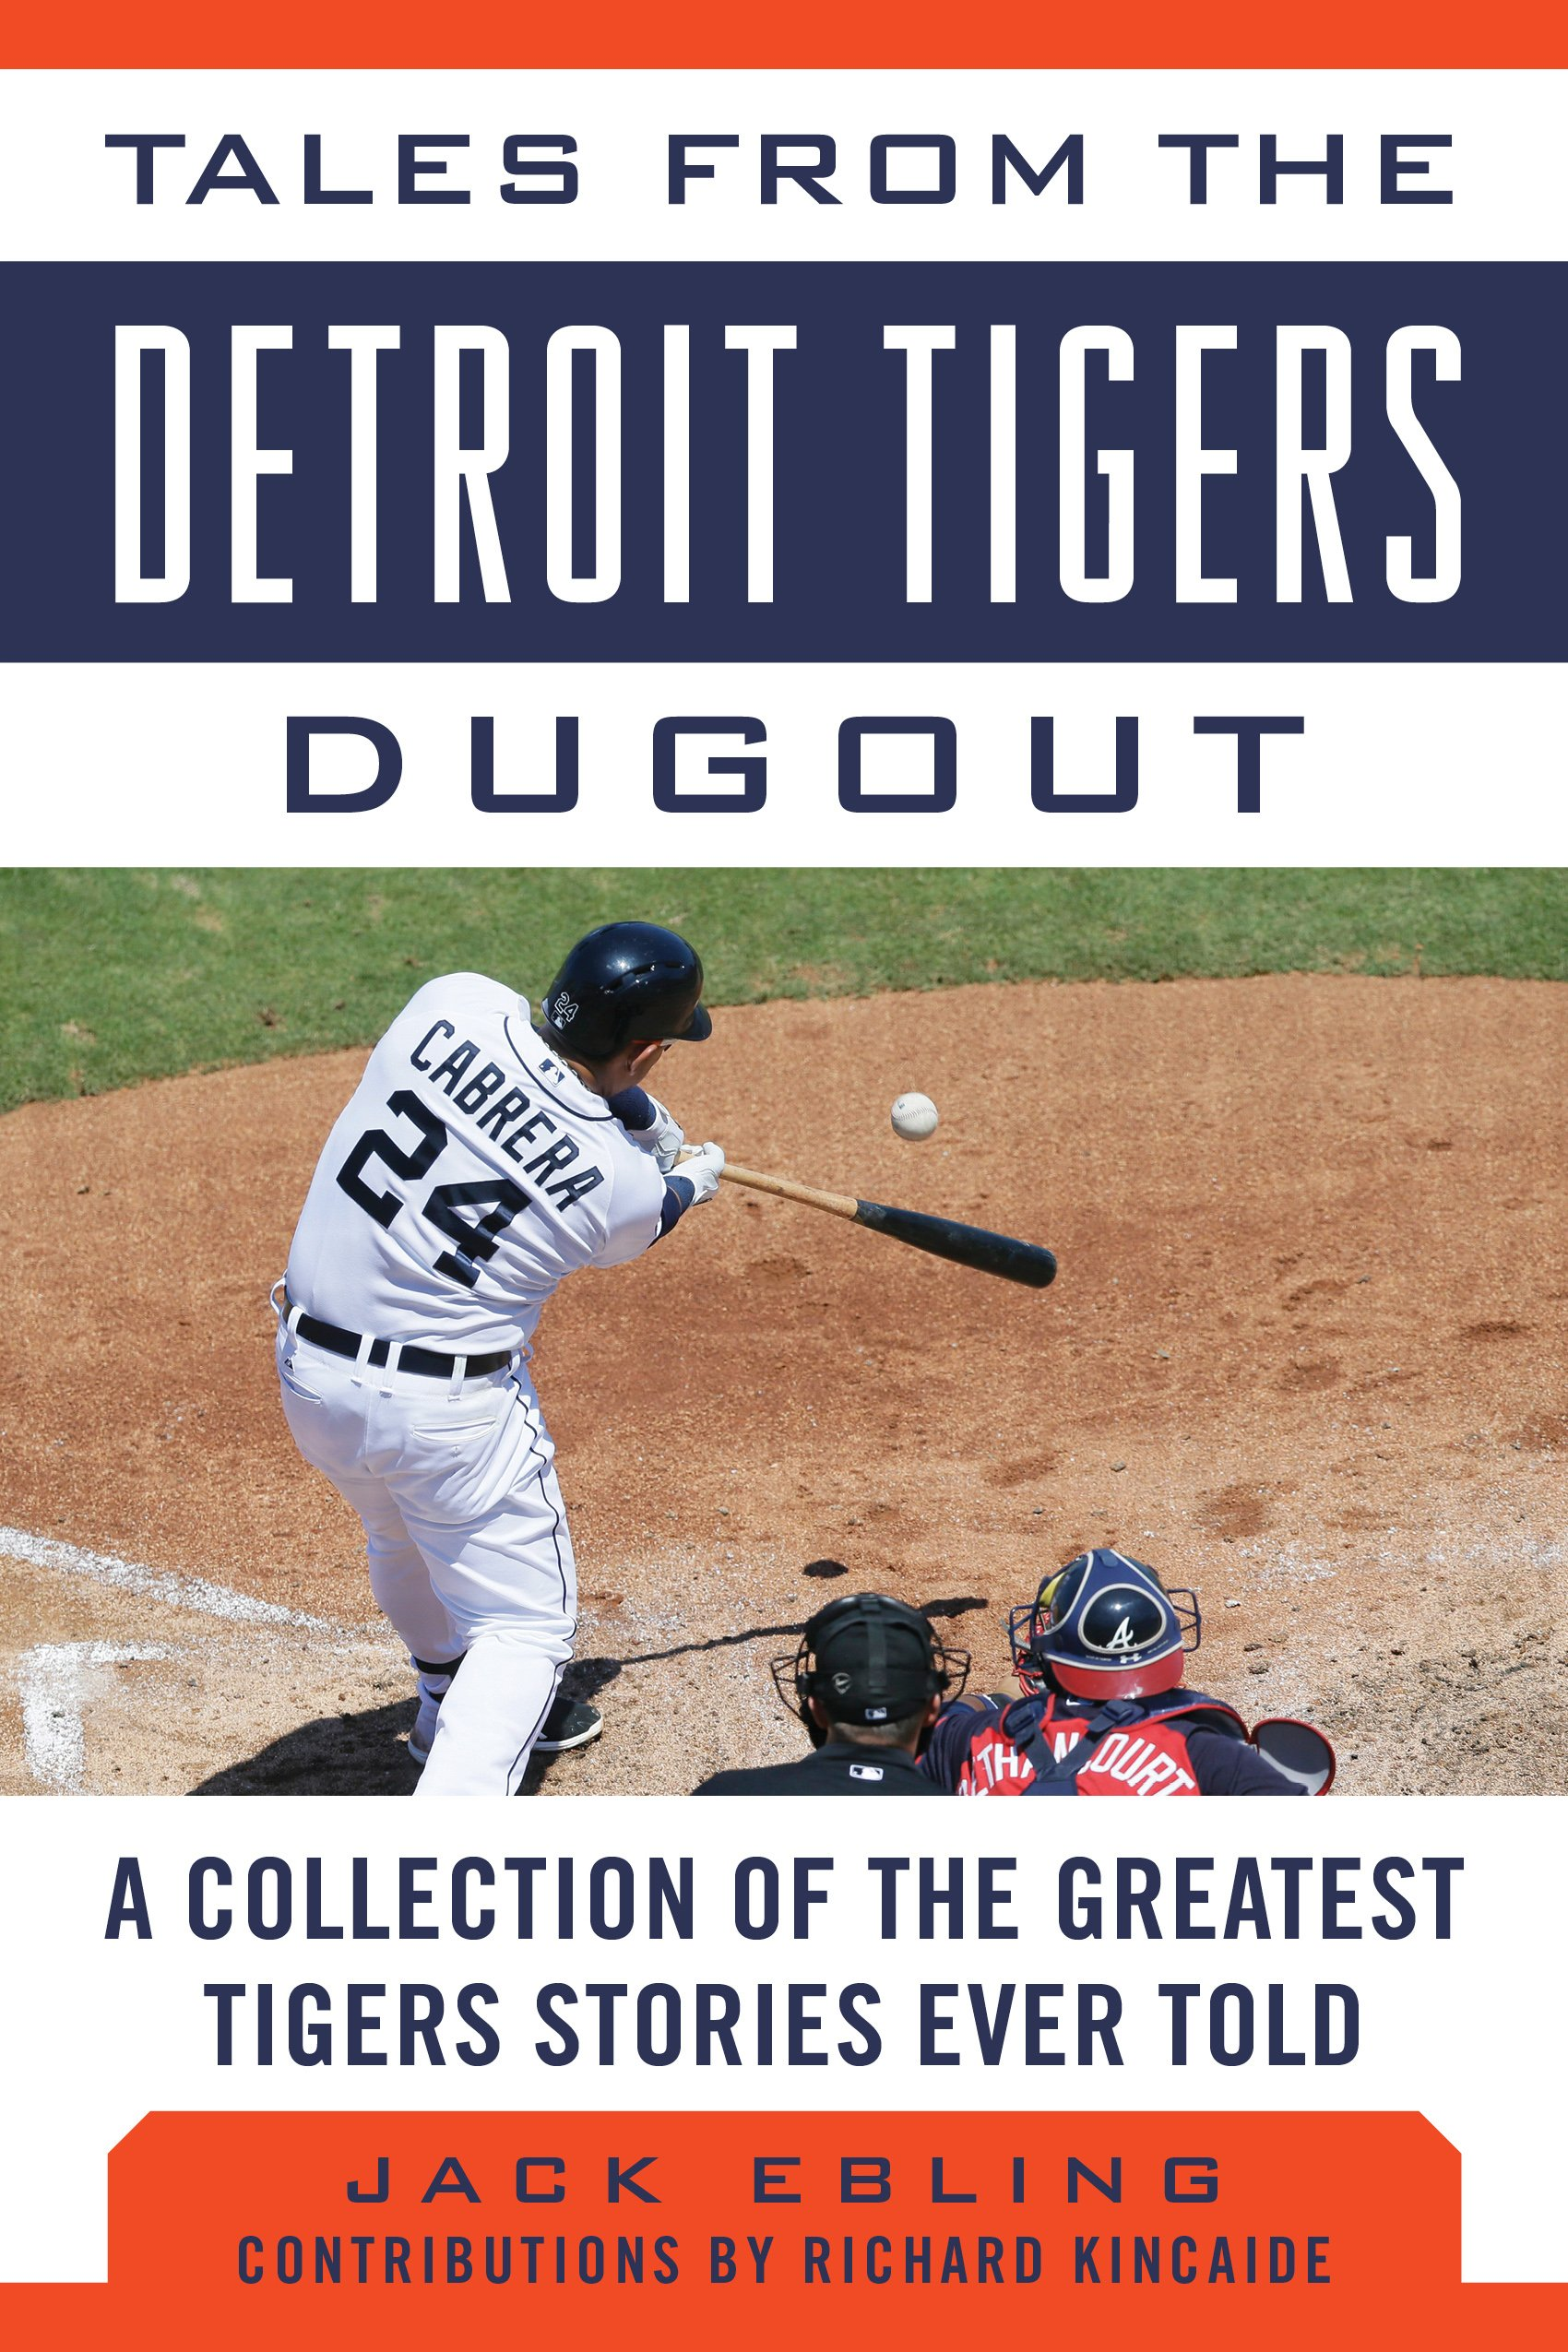 Download Tales from the Detroit Tigers Dugout: A Collection of the Greatest Tigers Stories Ever Told (Tales from the Team) PDF